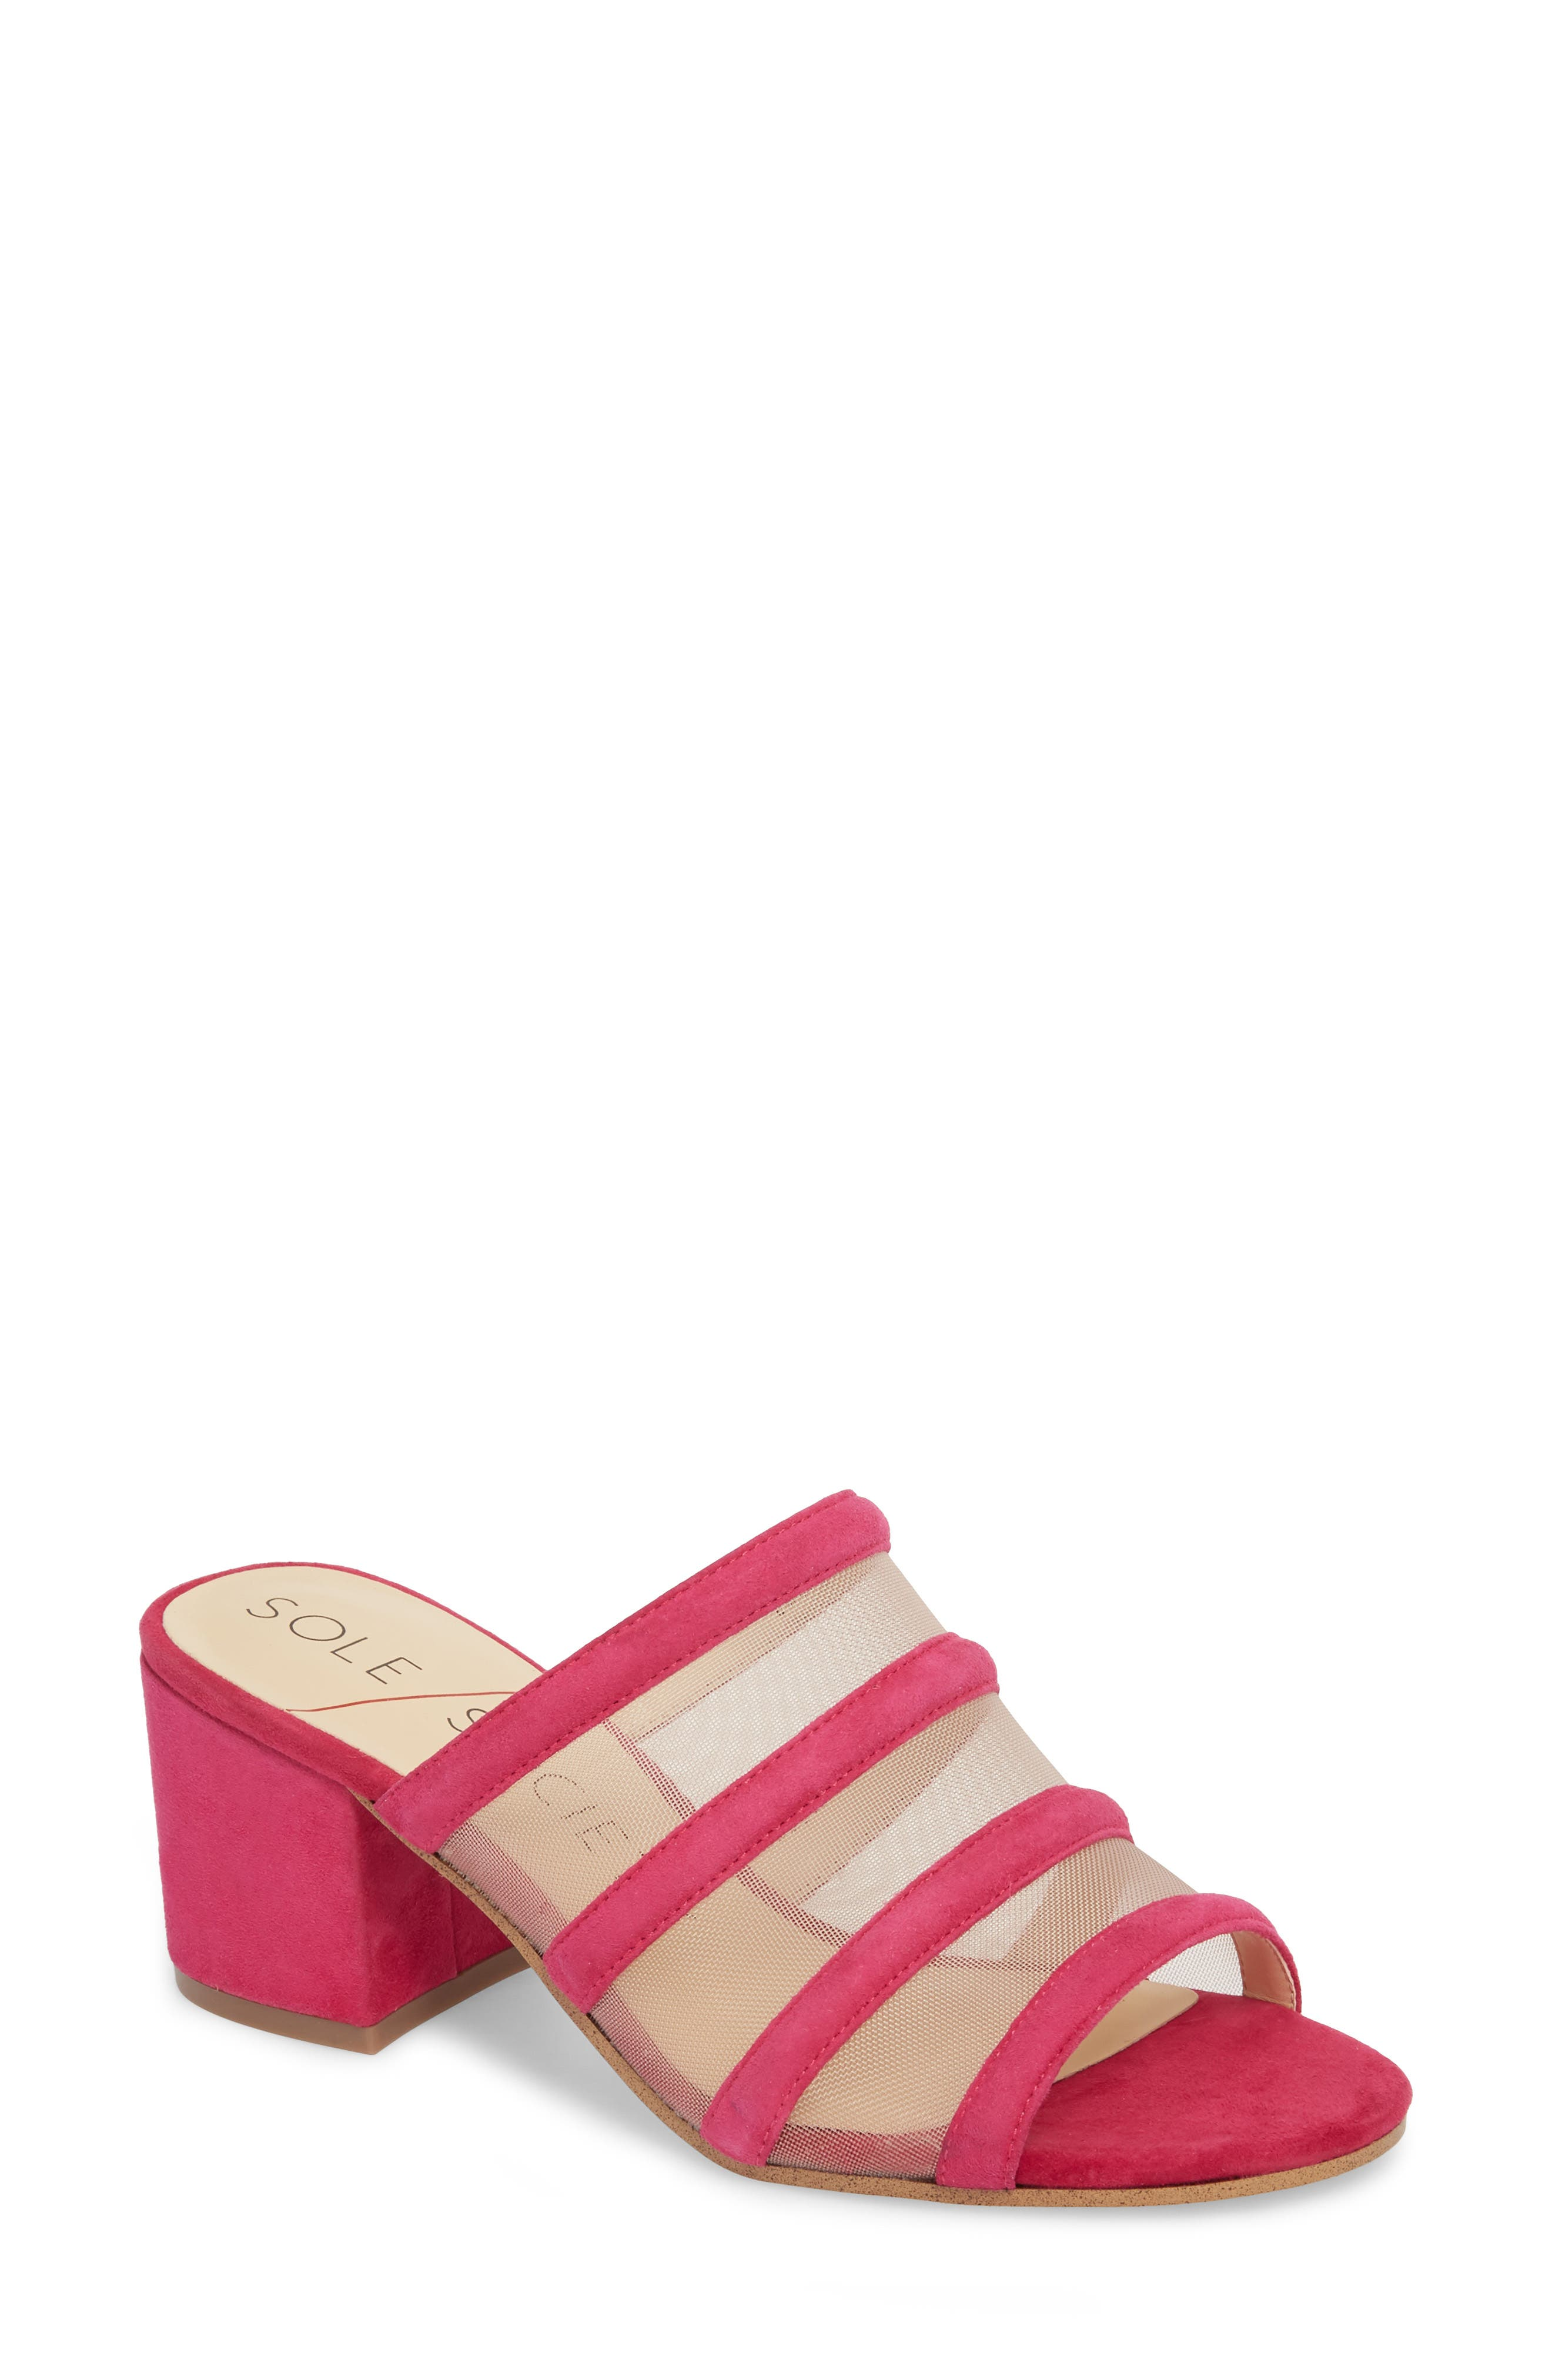 Sole Society Henna Sandal- Pink